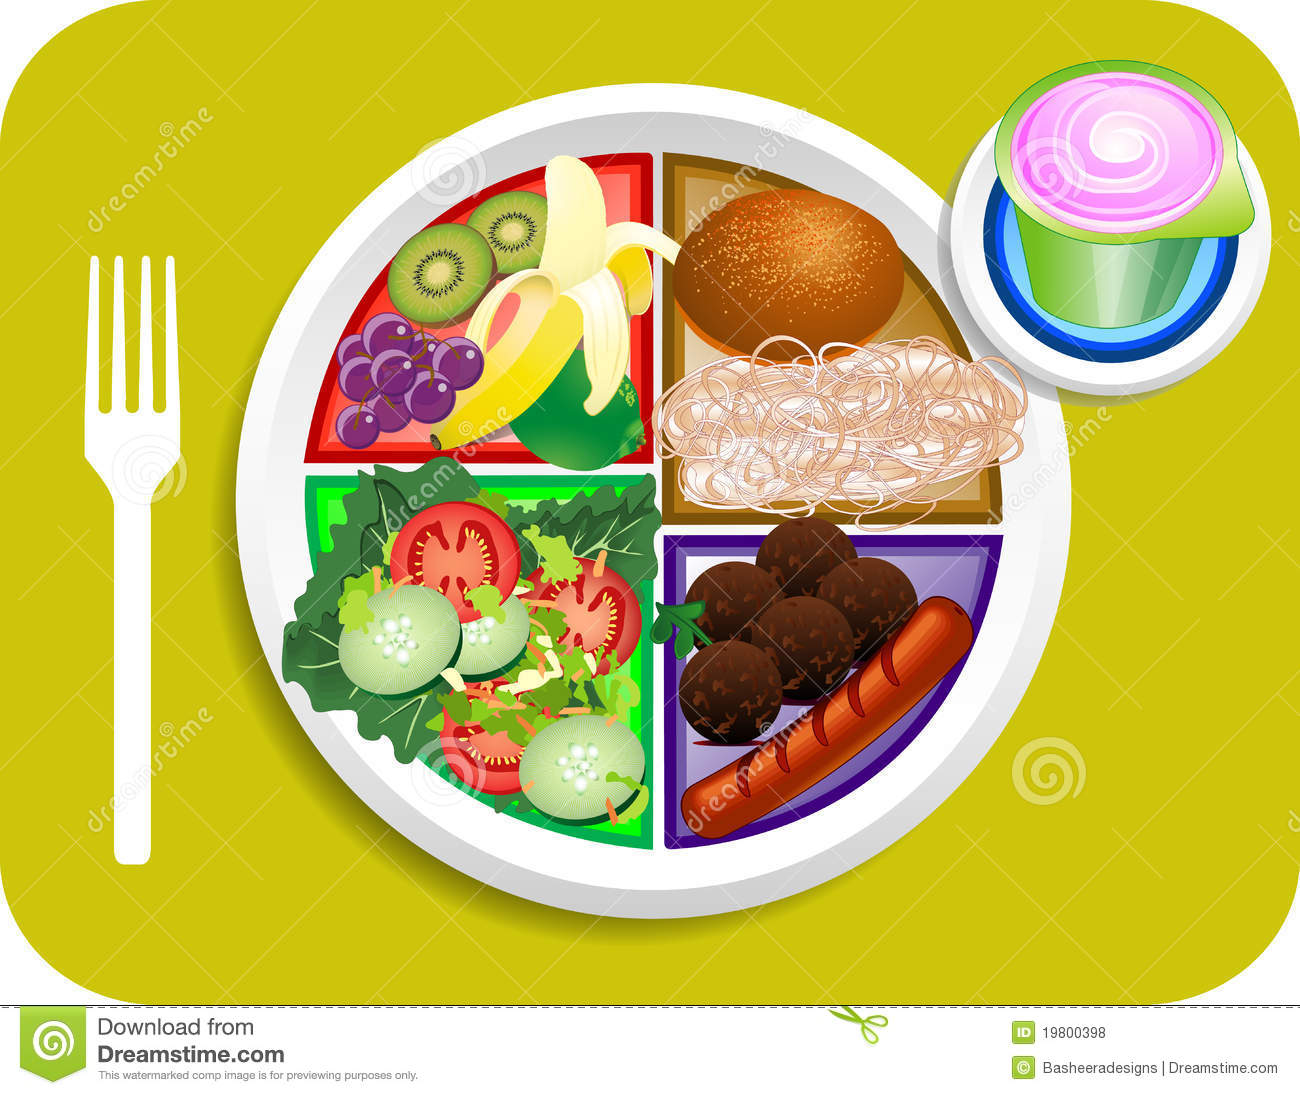 My Plate Diet Nutrition Guide Stock Photos - Image: 21538543